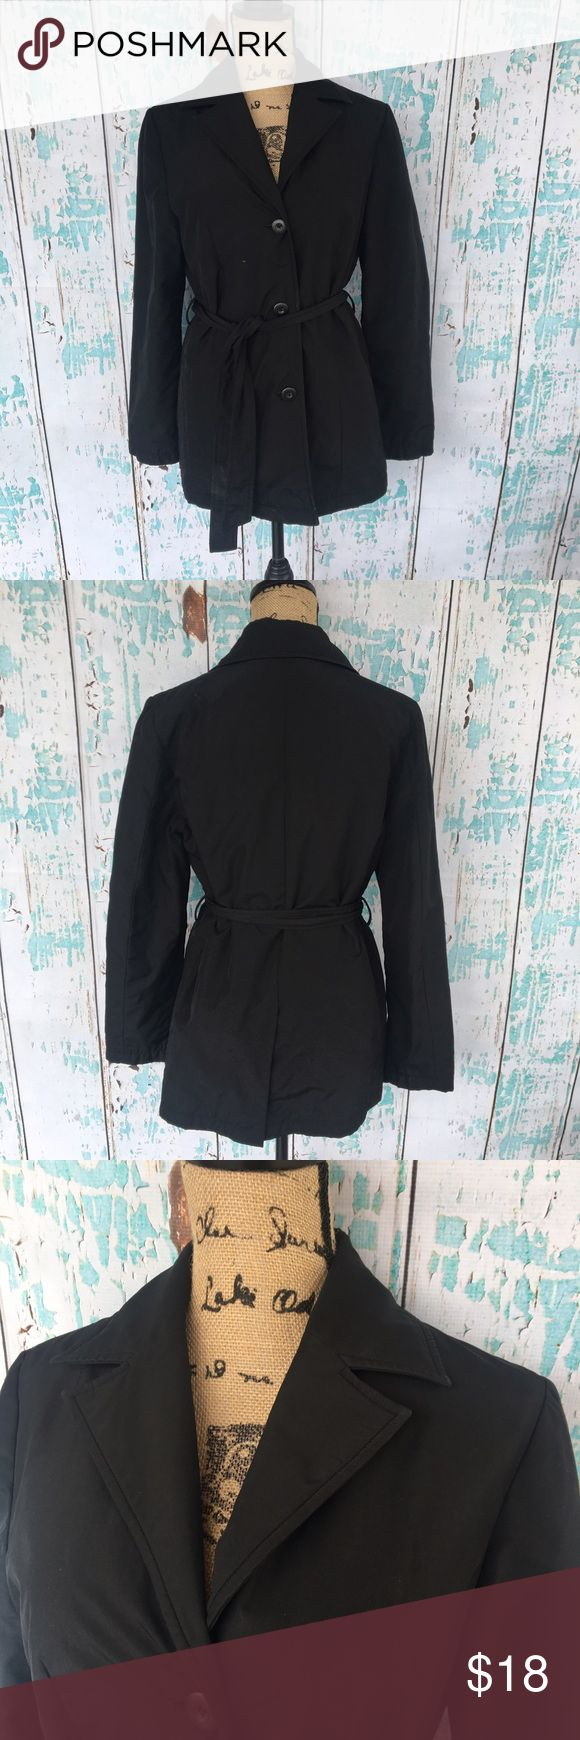 Old Navy rain jacket style short trench jacket Old Navy rain jacket style short trench jacket size medium 100% polyester. From Old Navy Outlet. Old Navy Jackets & Coats Trench Coats